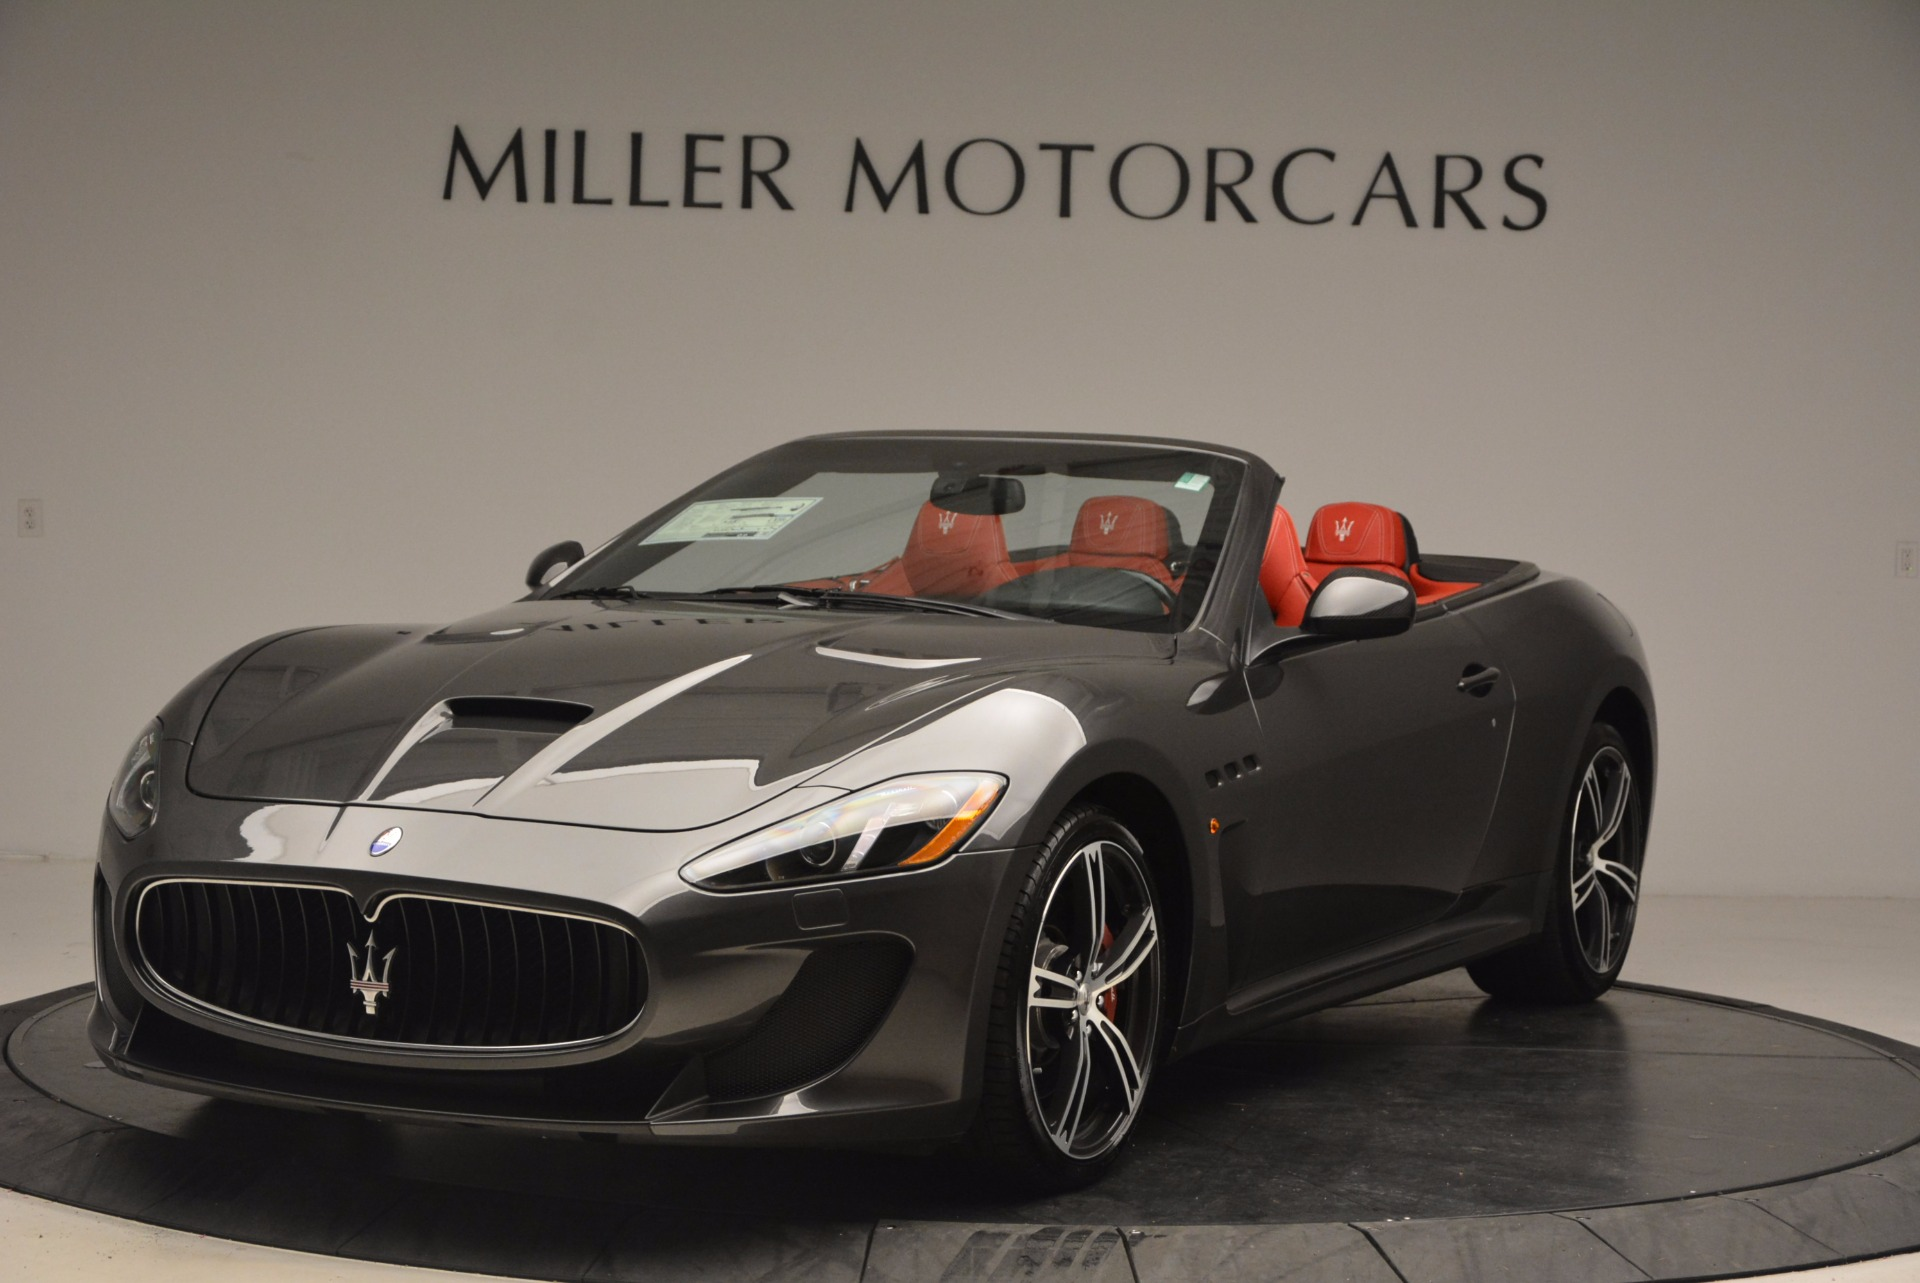 Used 2015 Maserati GranTurismo MC for sale Sold at Rolls-Royce Motor Cars Greenwich in Greenwich CT 06830 1